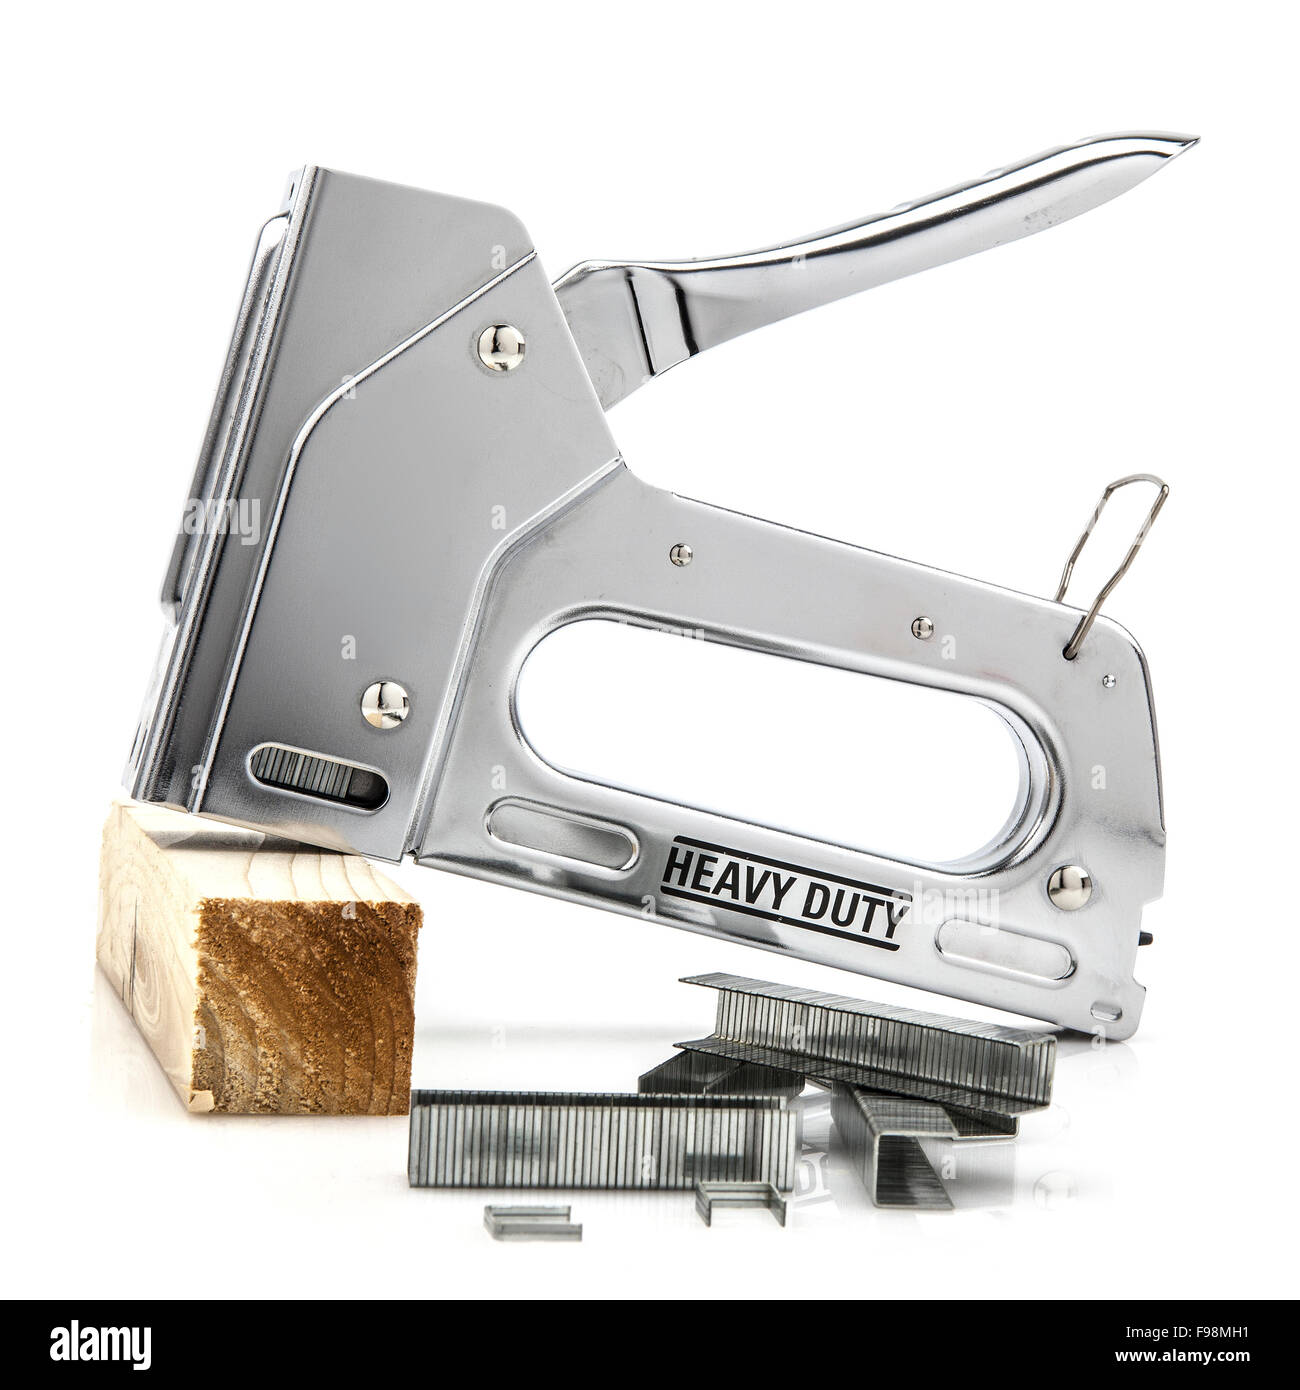 Heavy duty staple gun with staples isolated on white - Stock Image